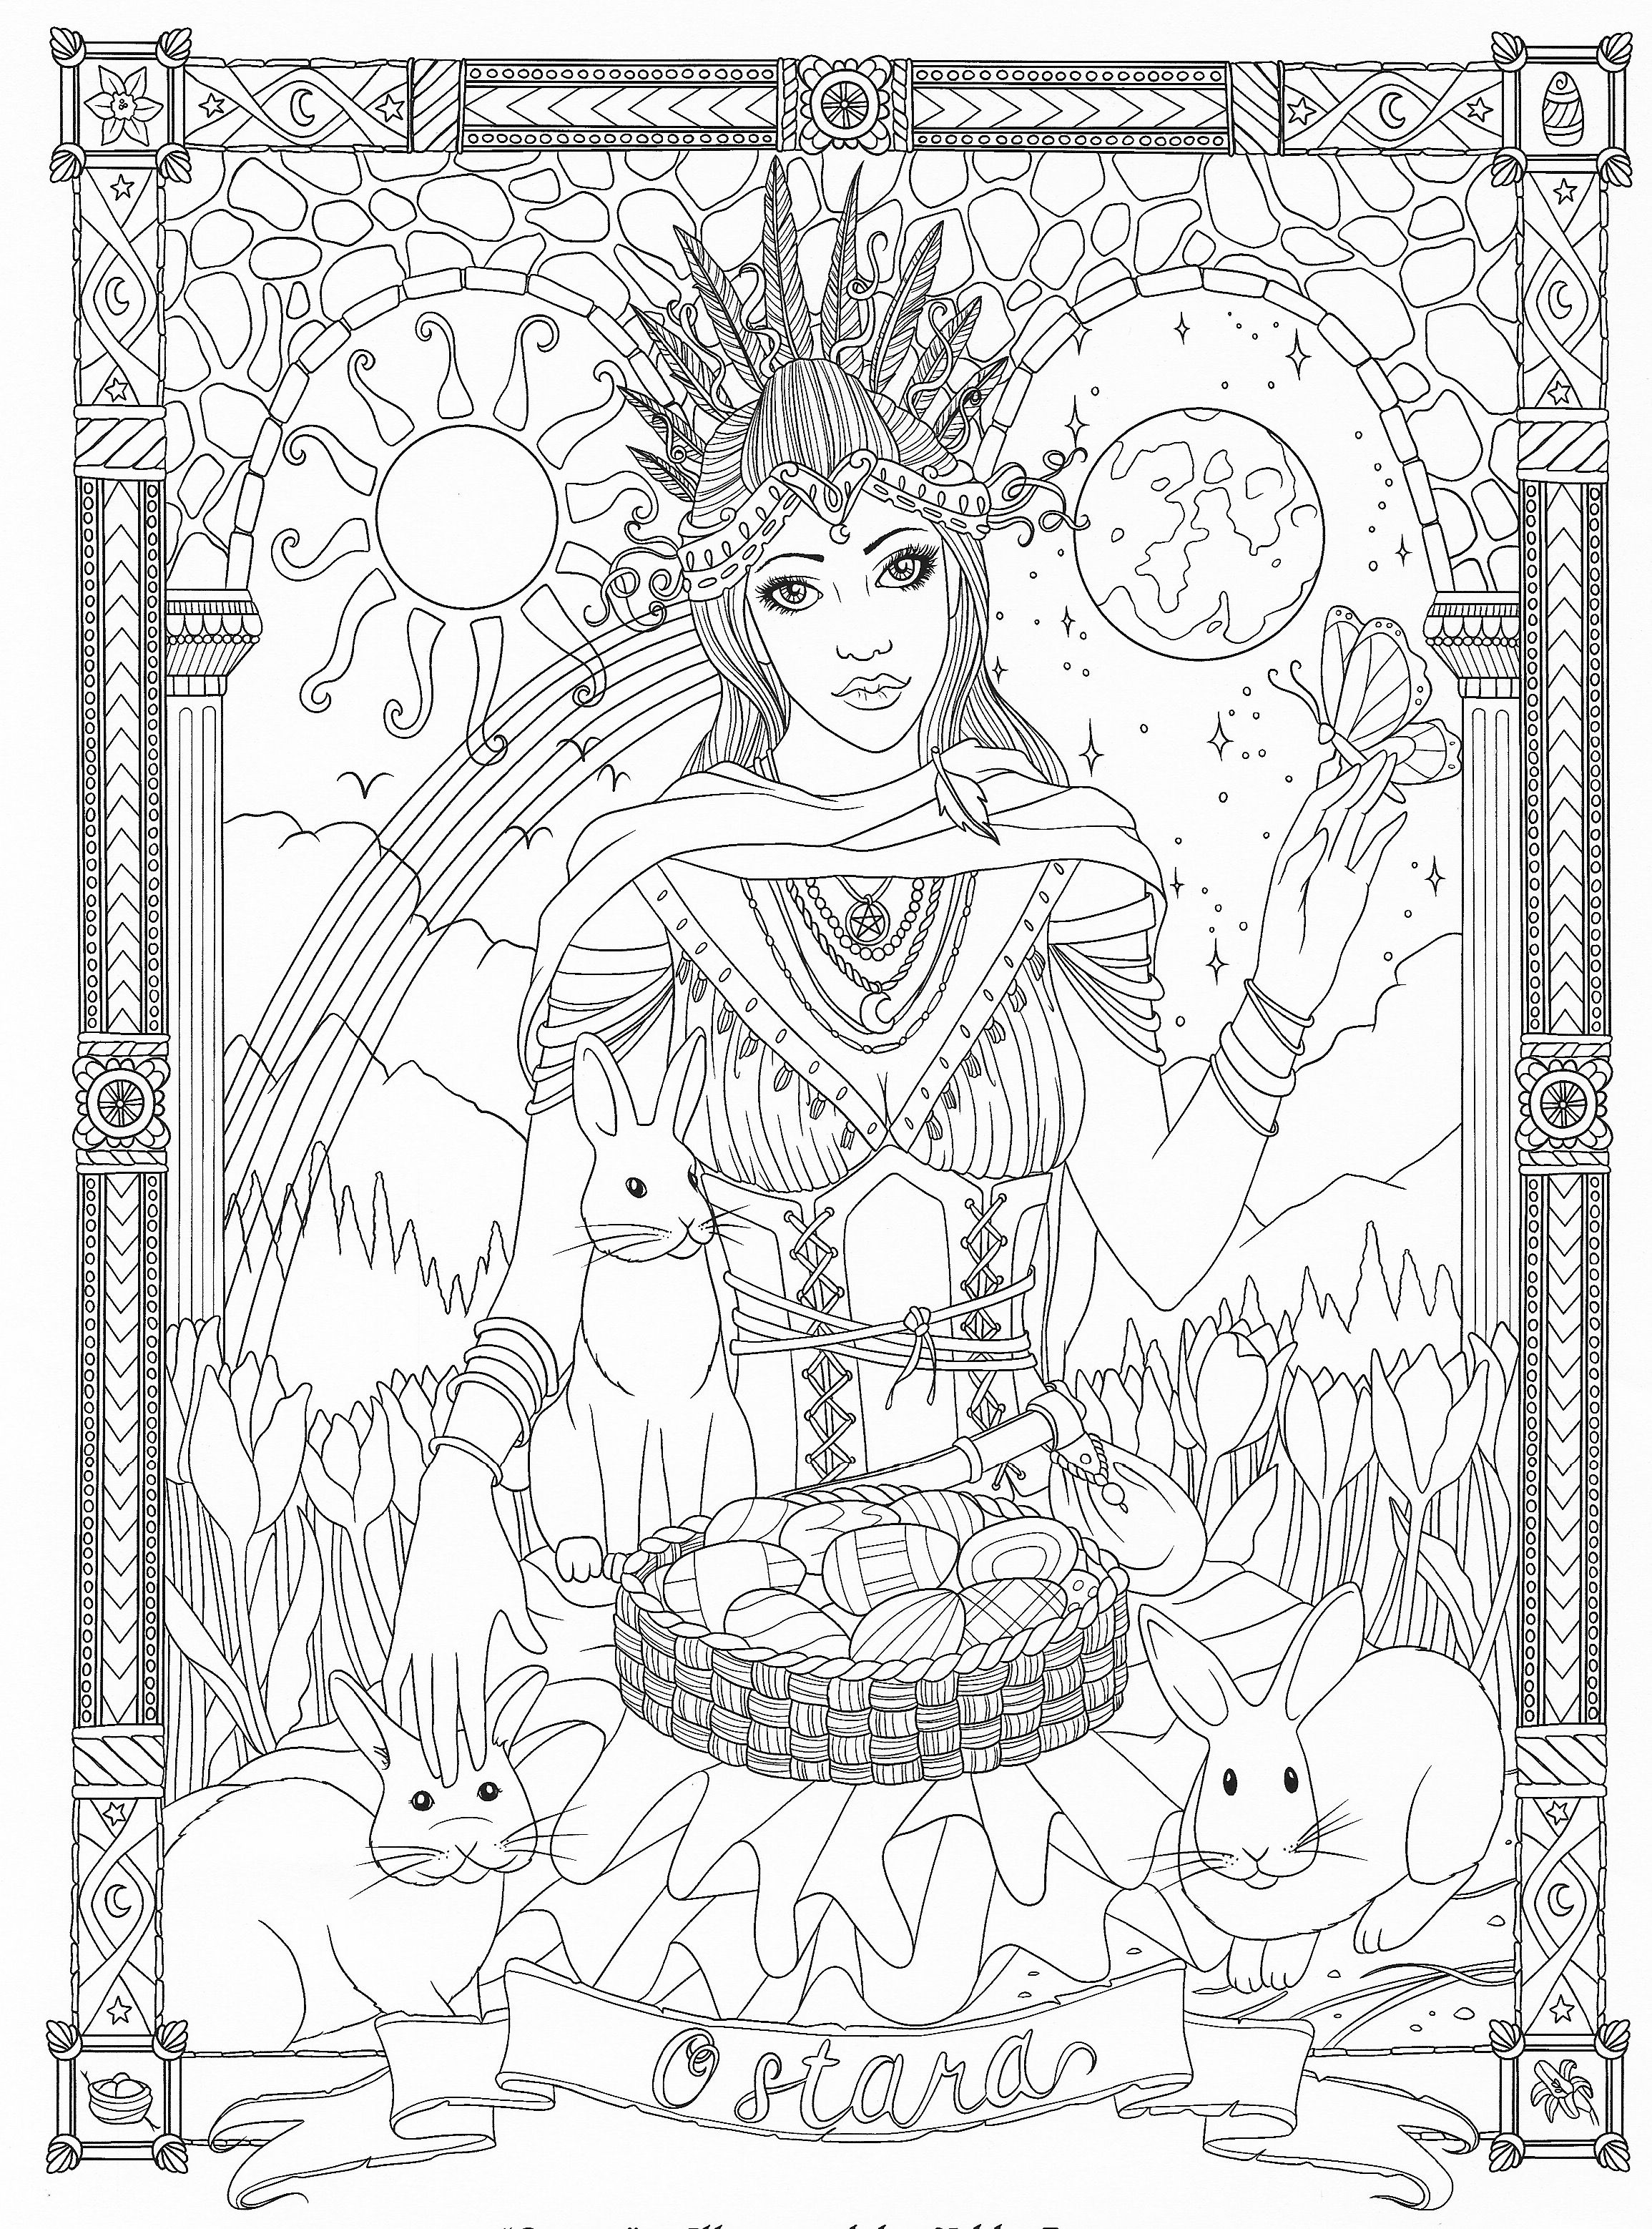 Wiccan Coloring Pages : wiccan, coloring, pages, Goddess, Coloring, Pages, Adults